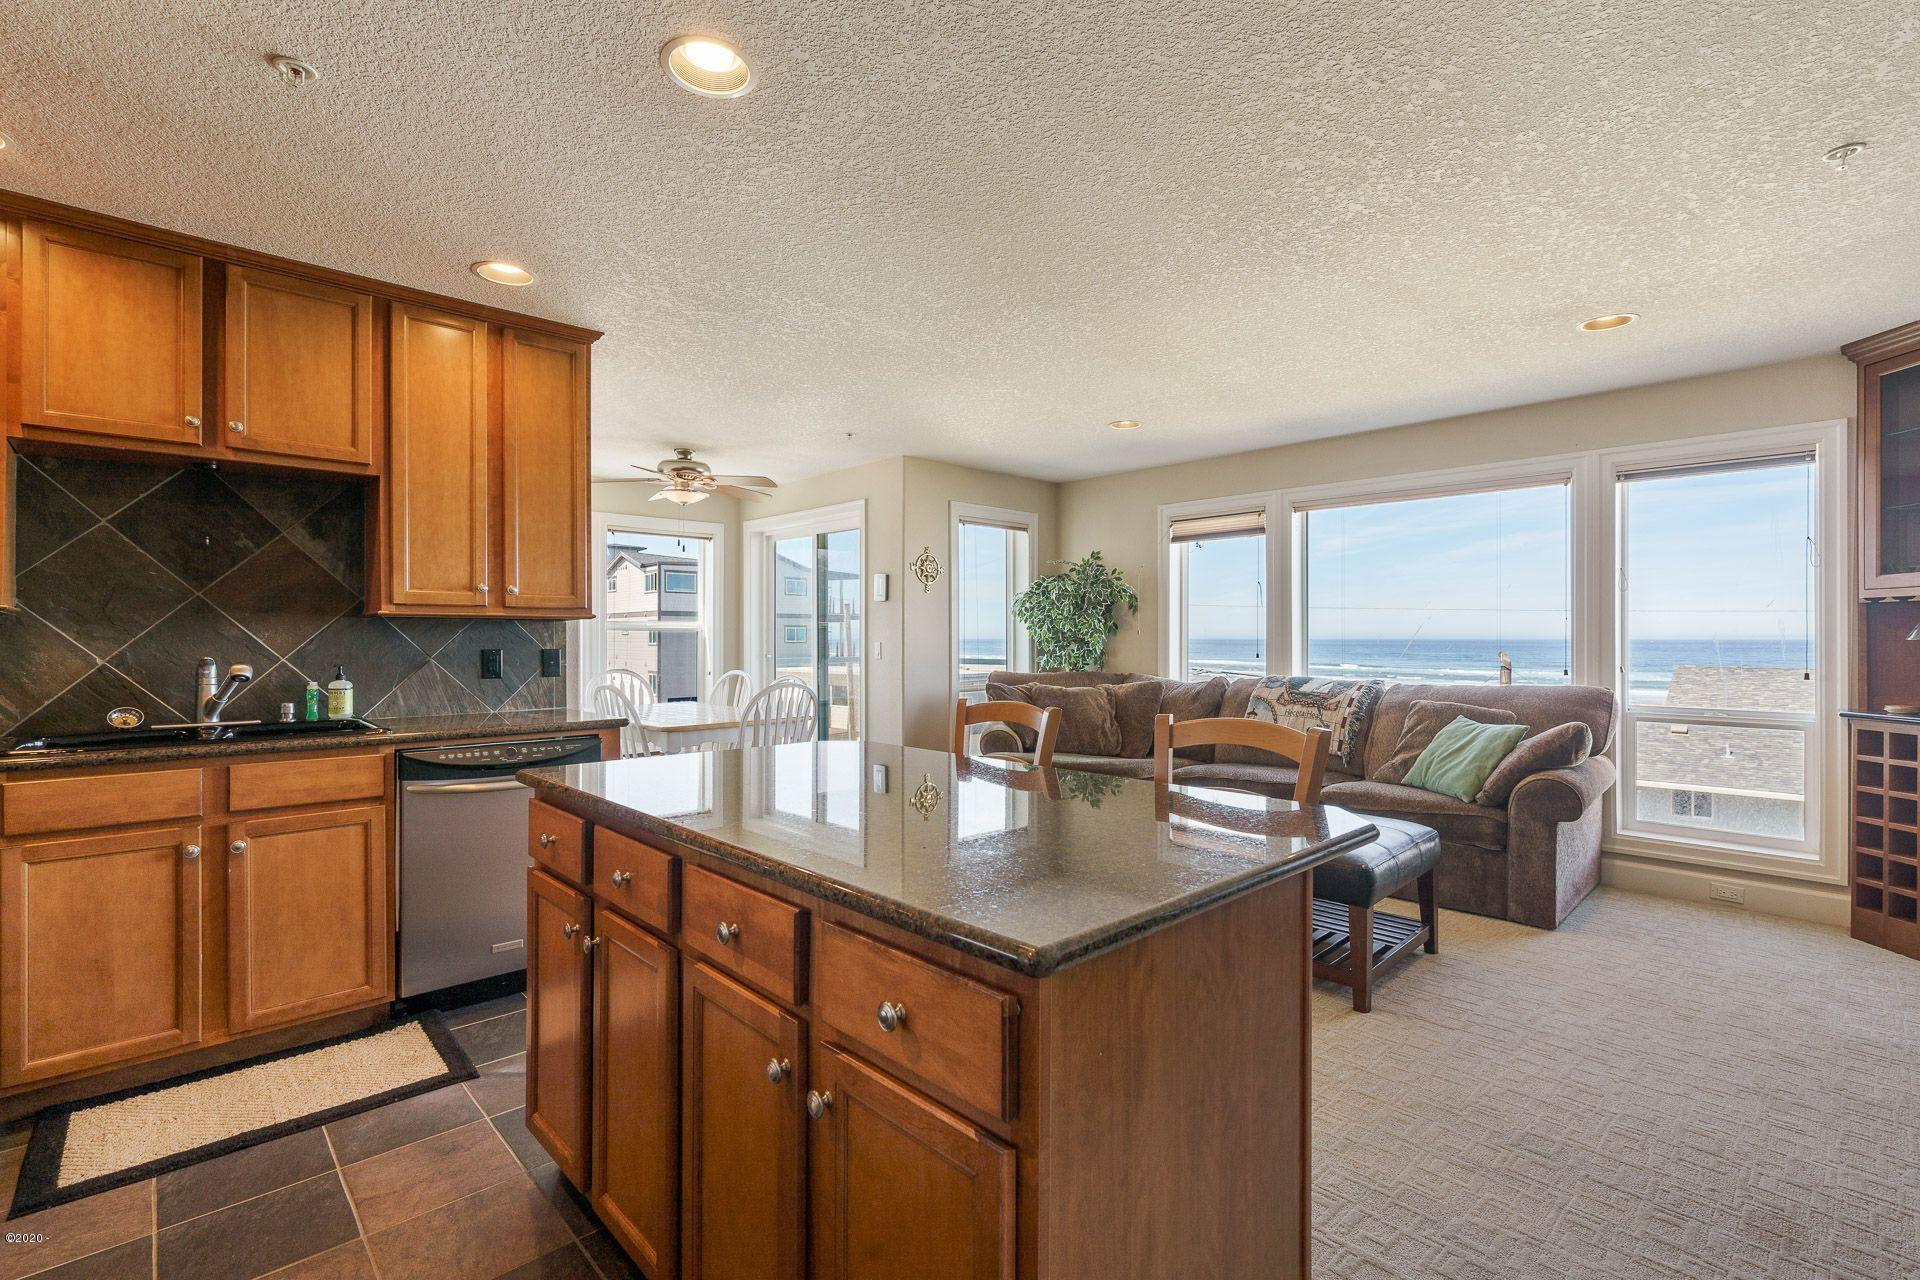 300 N Pacific Street, #41, Rockaway Beach, OR 97136 - Kitchen with a view